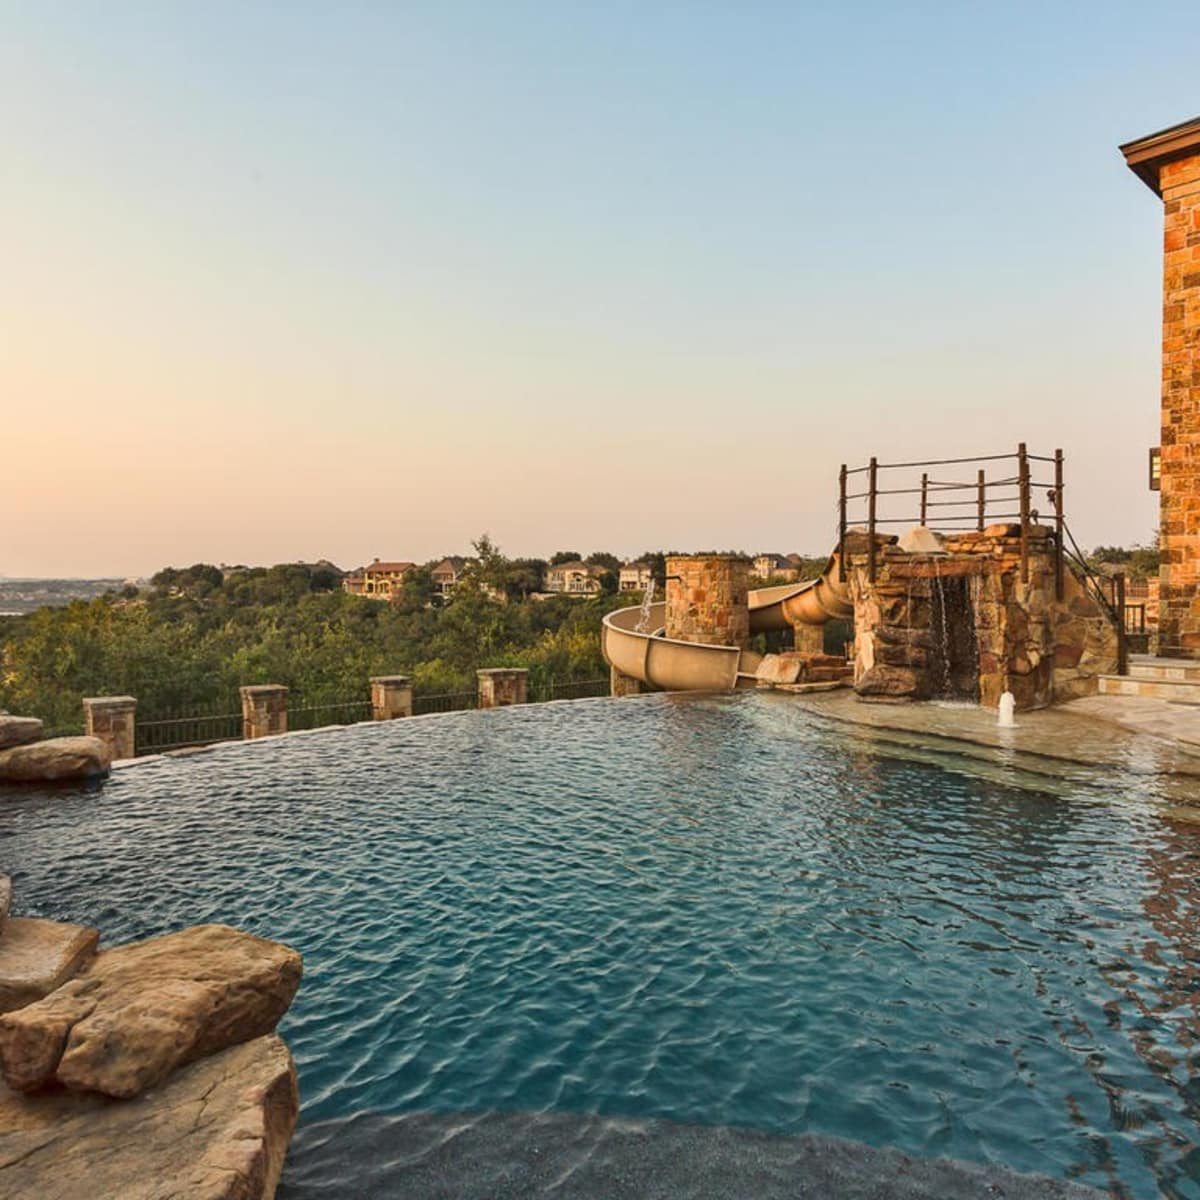 Austin home house 12006 Pleasant Panorama View 78738 Jeff Kent April 2016 pool